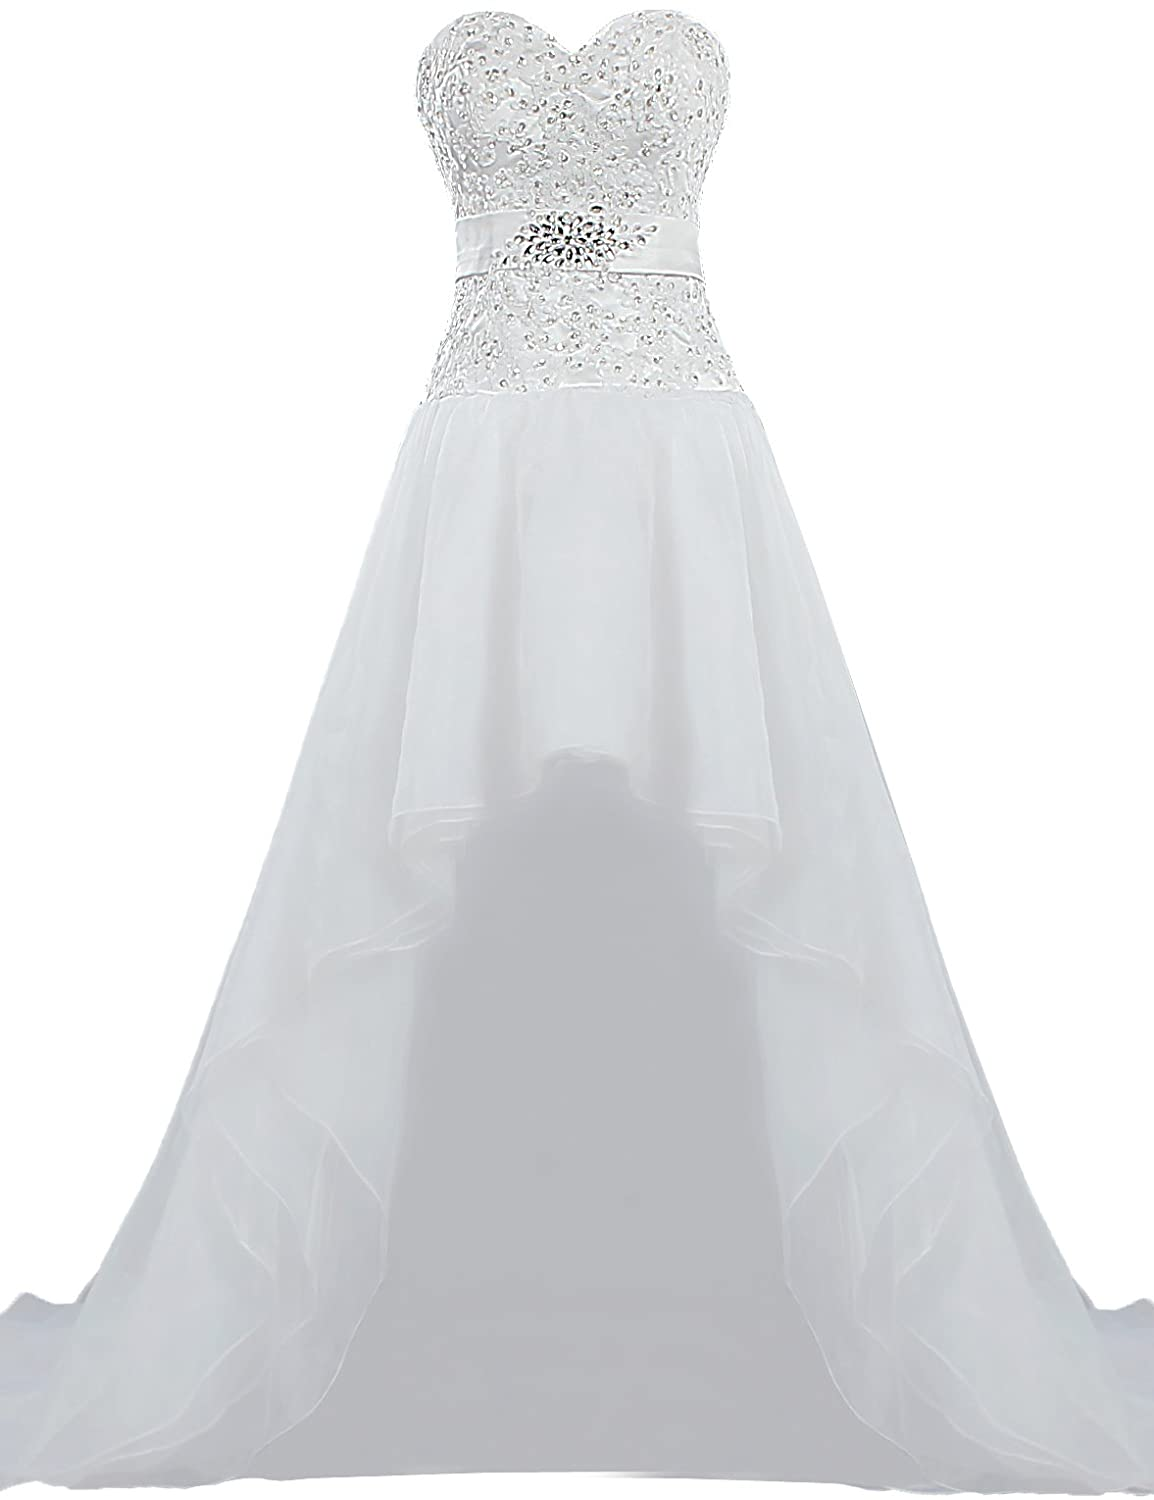 Unbranded**** Women's Casual Organza High Low Wedding Dresses Bridal Gown K300-MFN